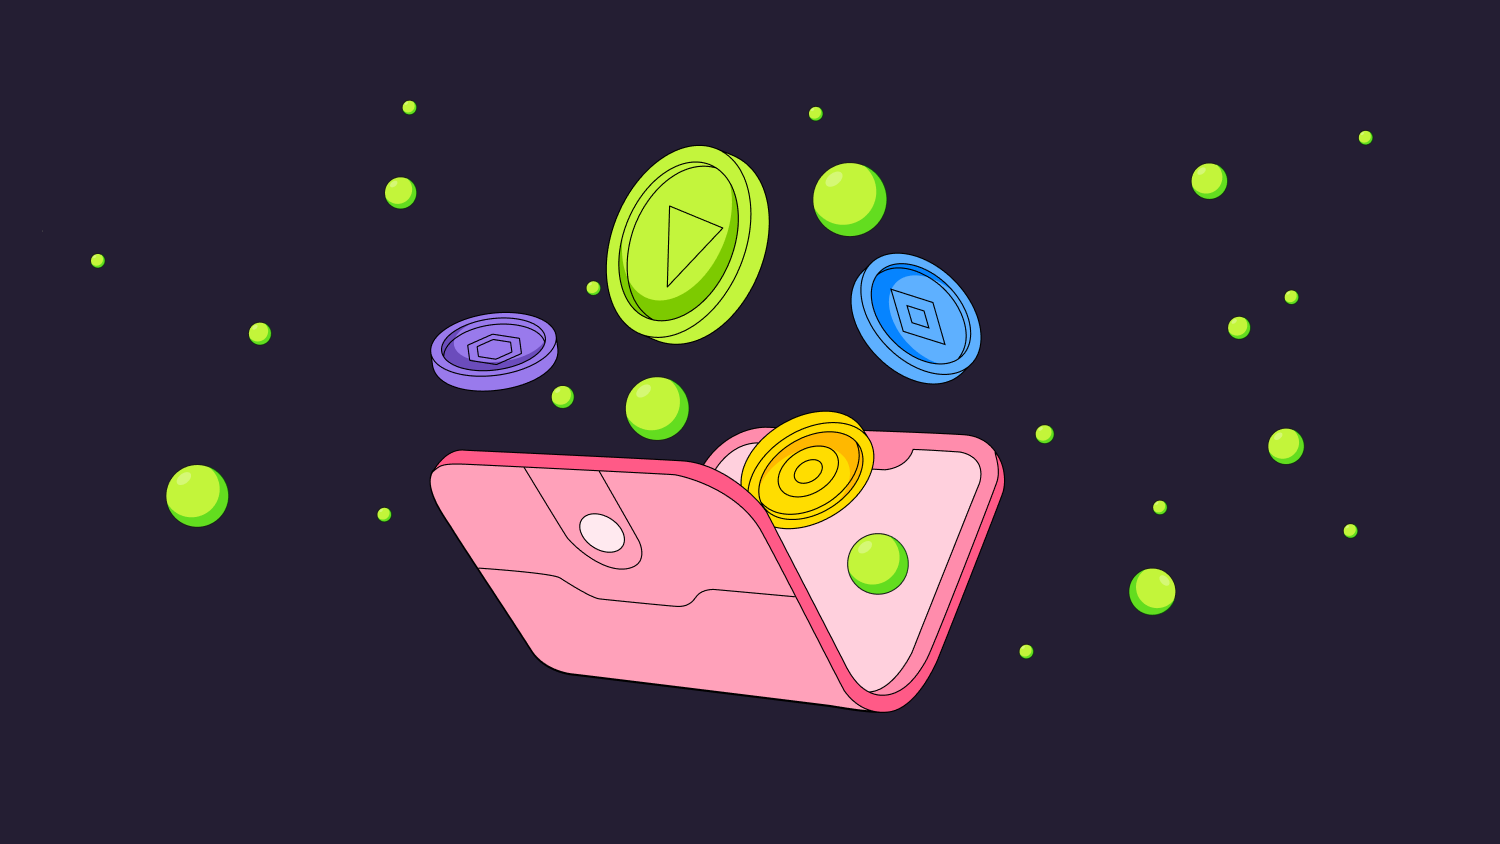 When wallets? We have news! We're excited to share that starting next month, the first customers will begin testing crypto wallets on Robinhood. We�